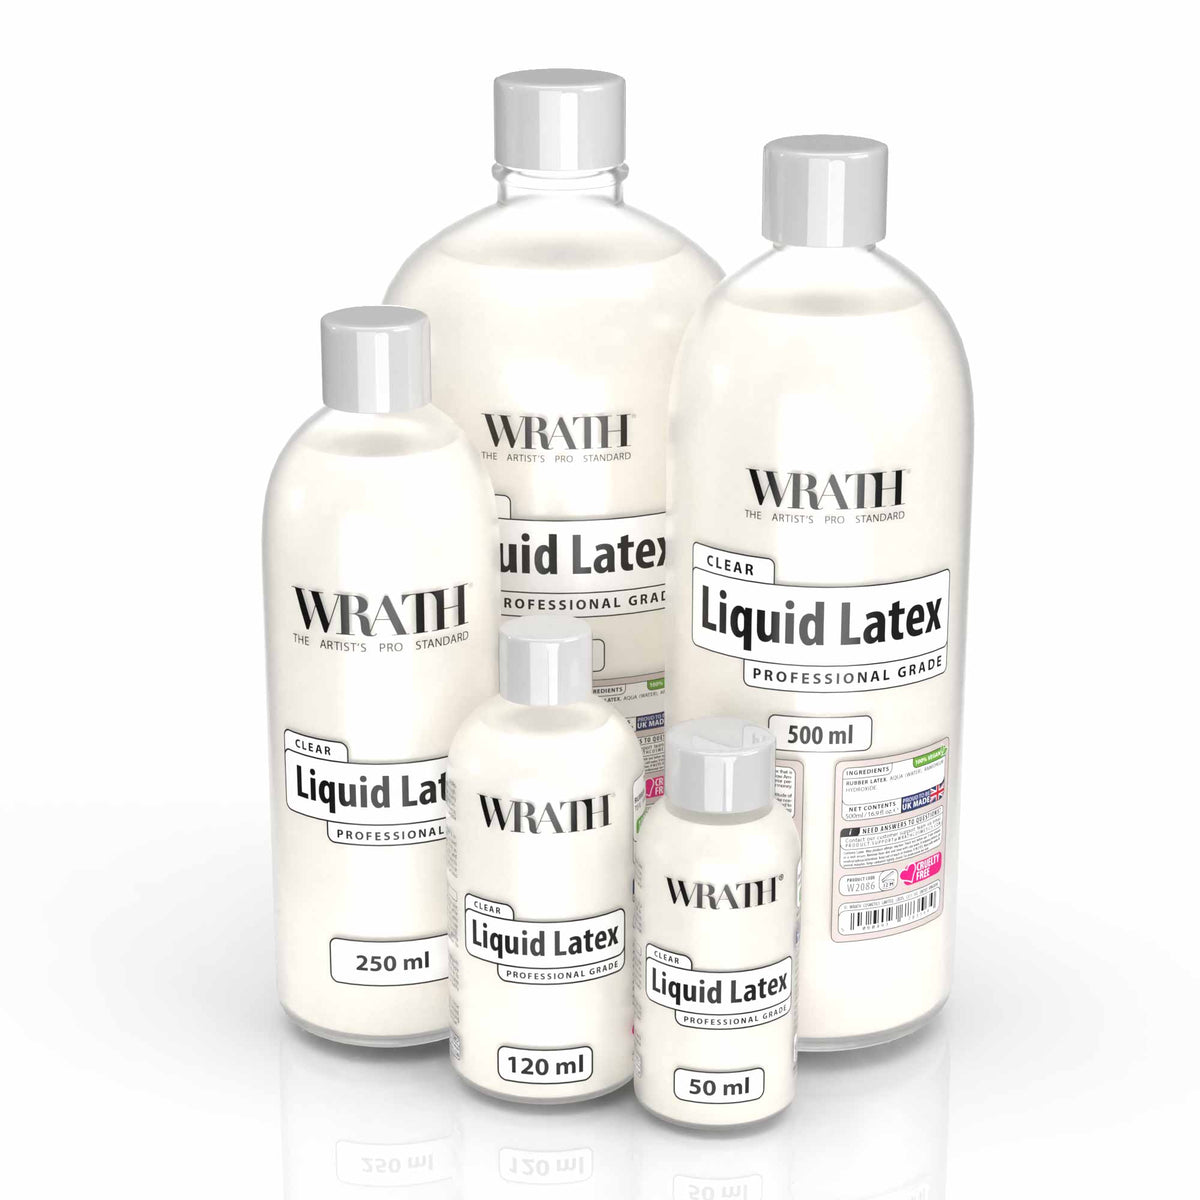 WRATH Professional Liquid Latex - Clear